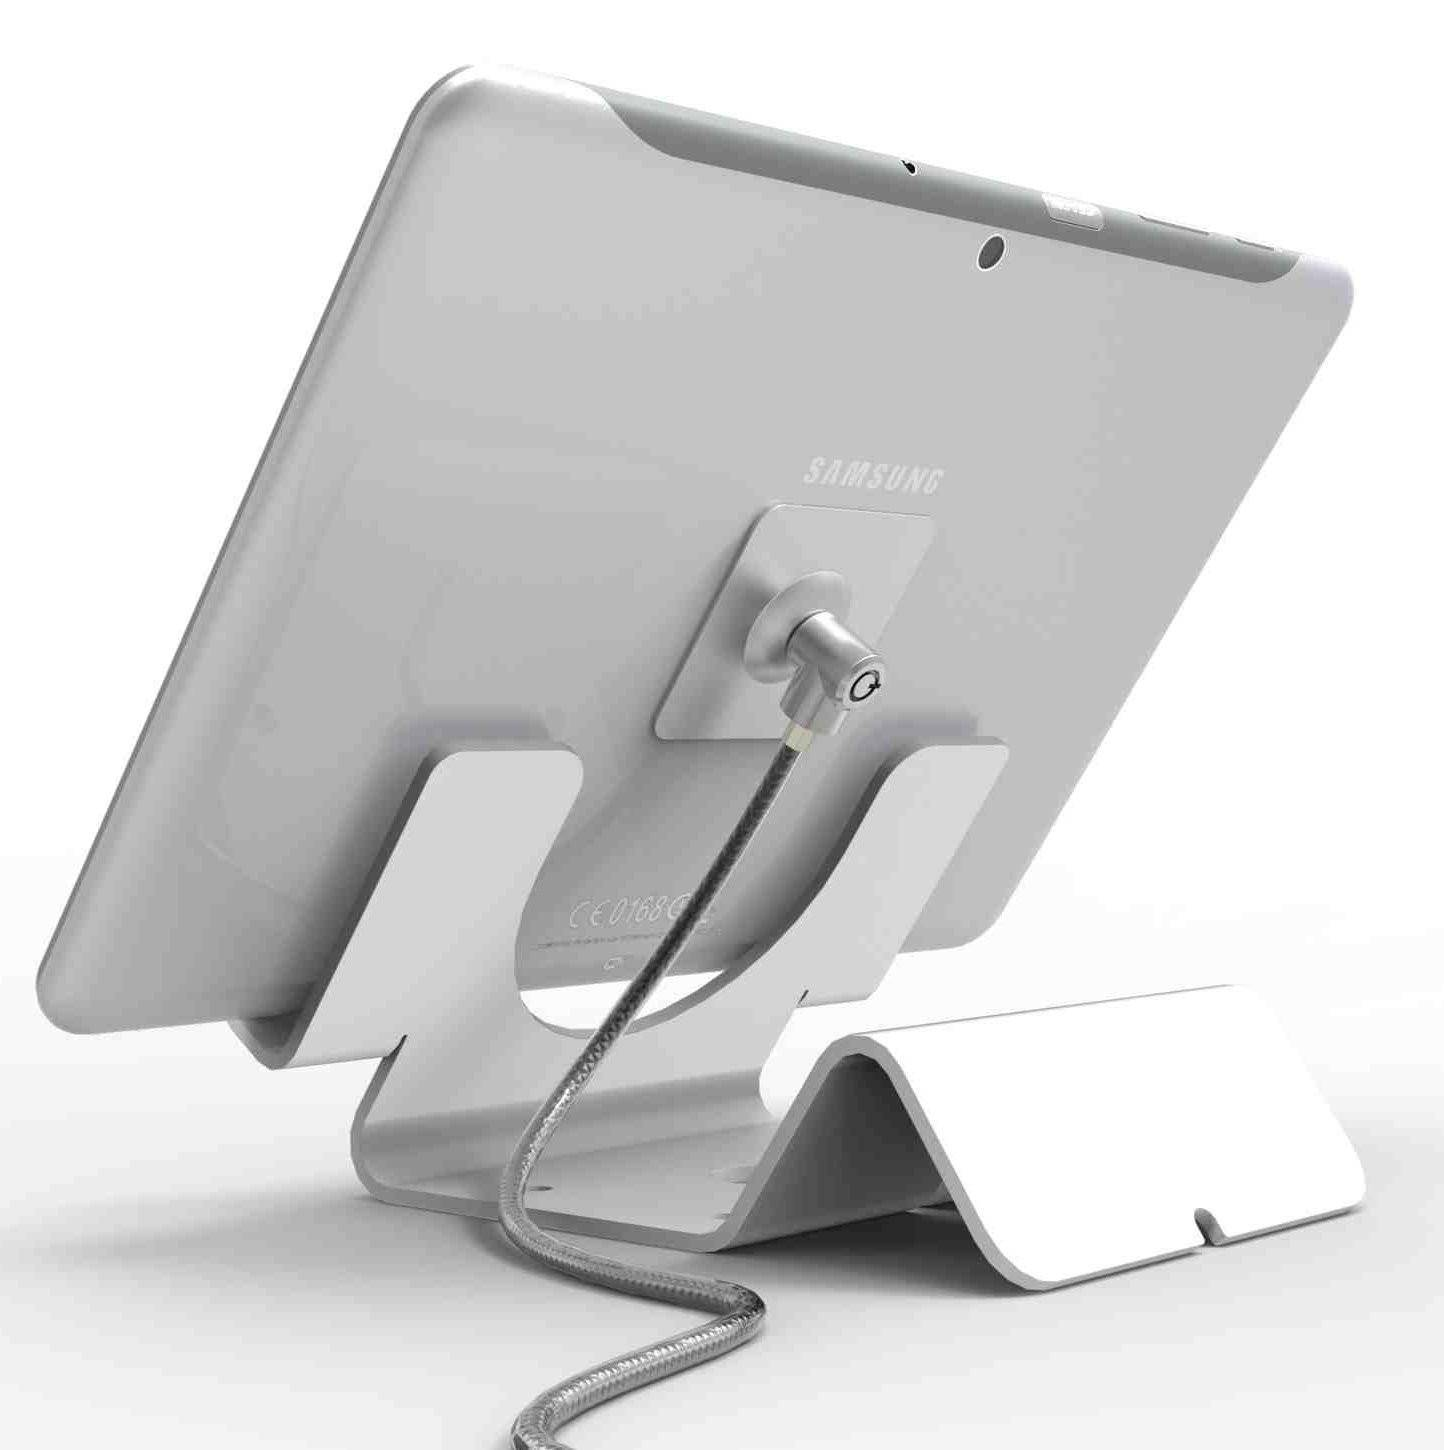 COMPULOCKS Universal Tablet Security Holder Intérieur Blanc